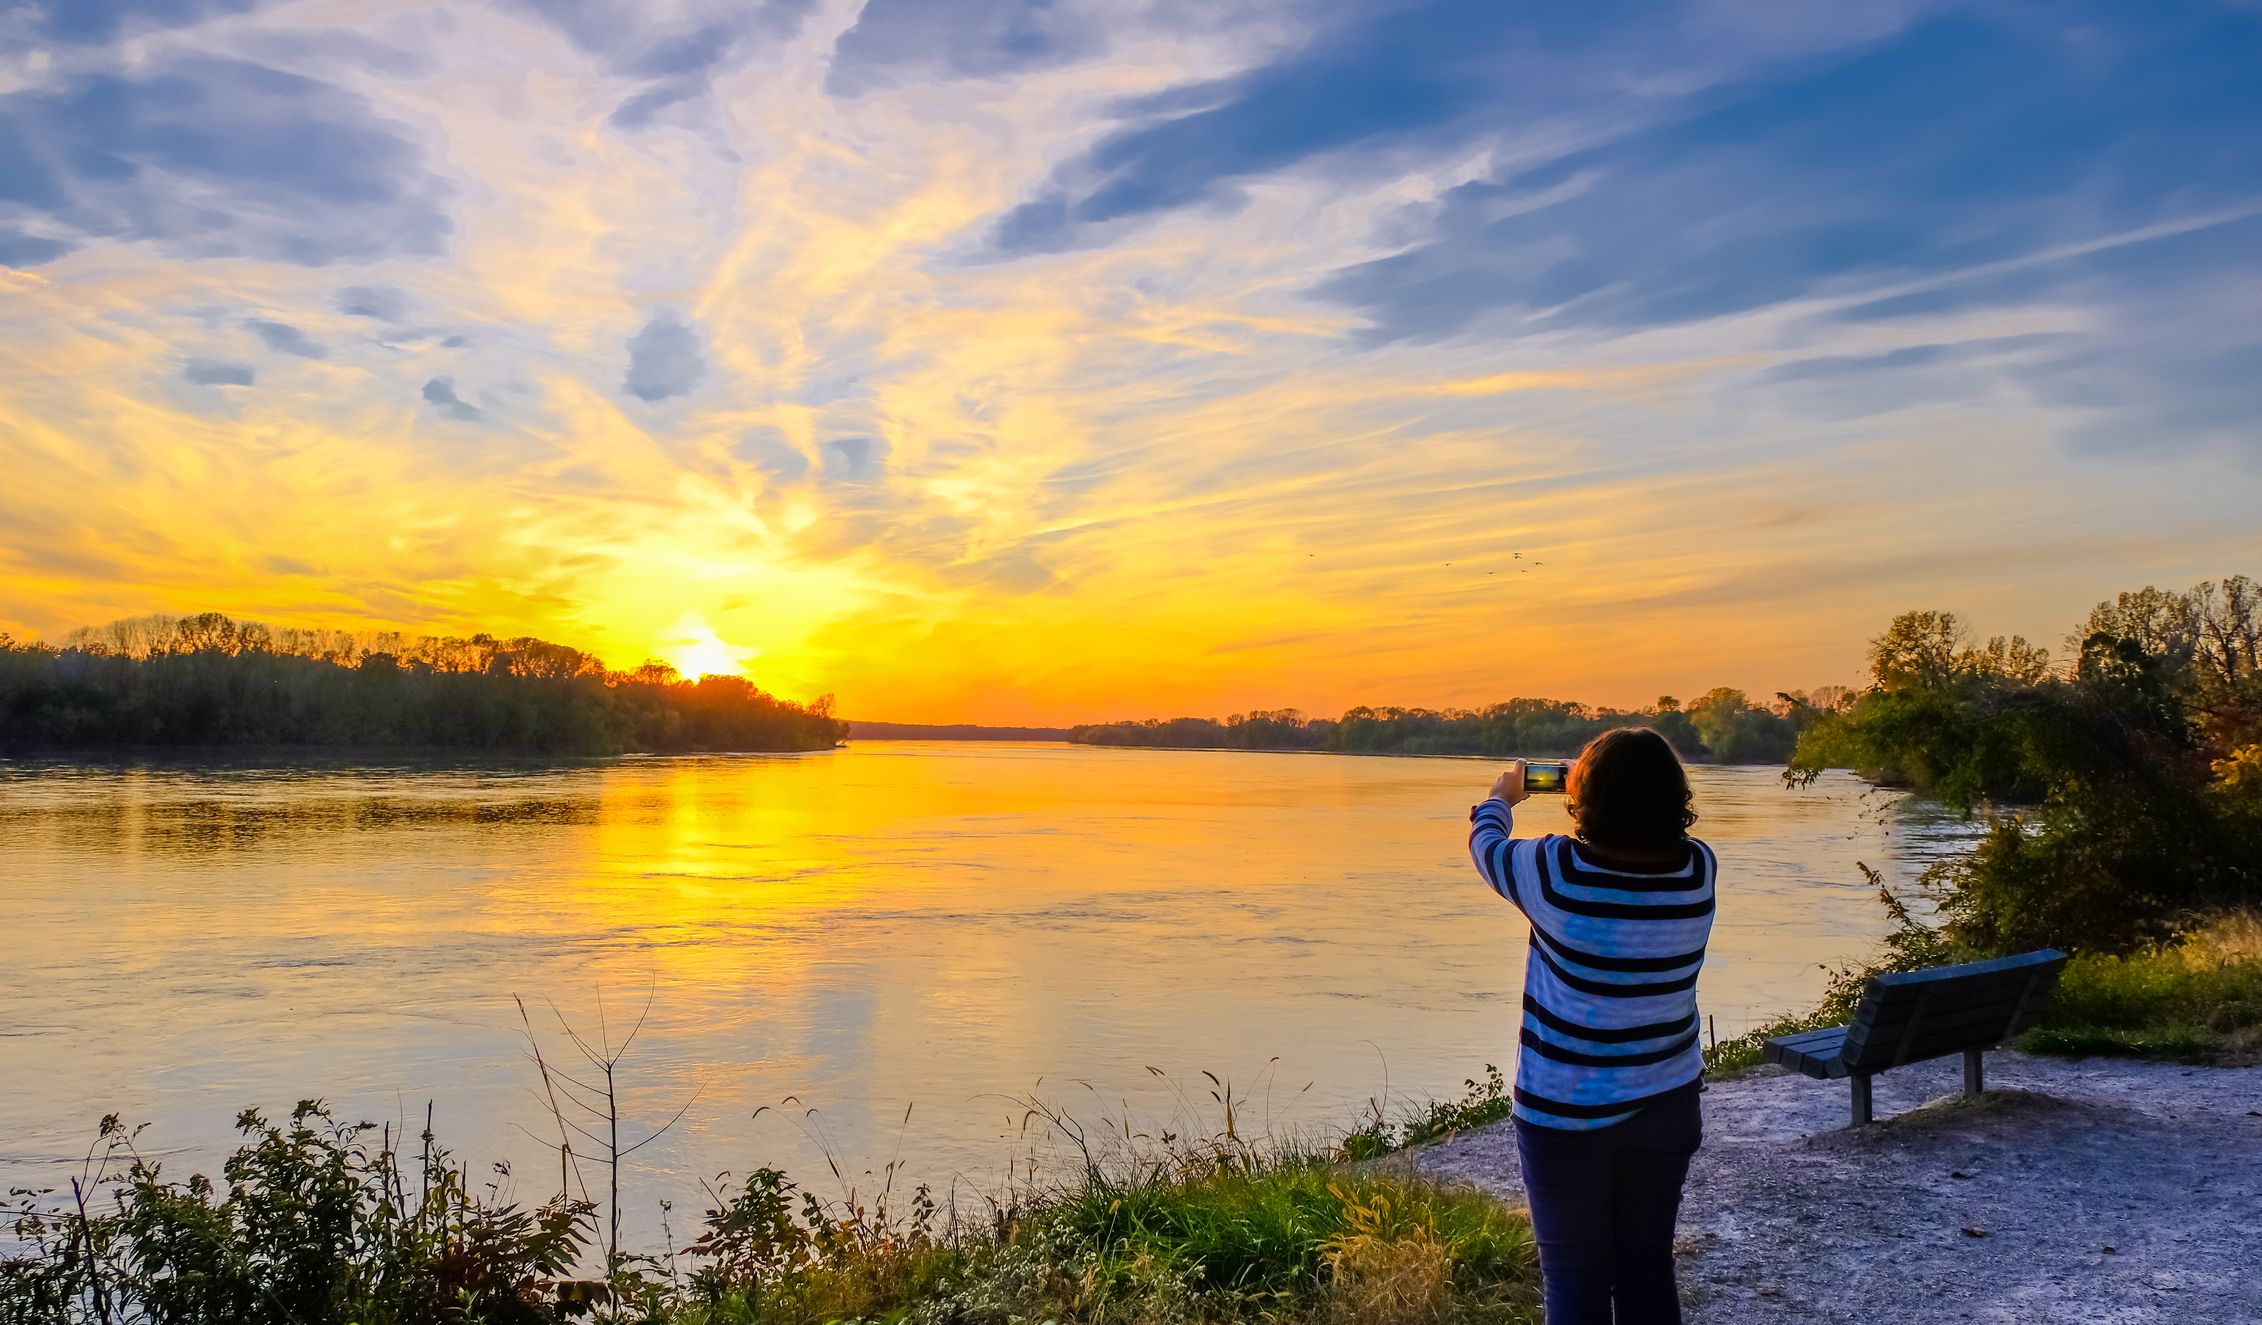 Enjoy your days by the Missouri River which is home to over 150 fish species and about 300 species of birds.